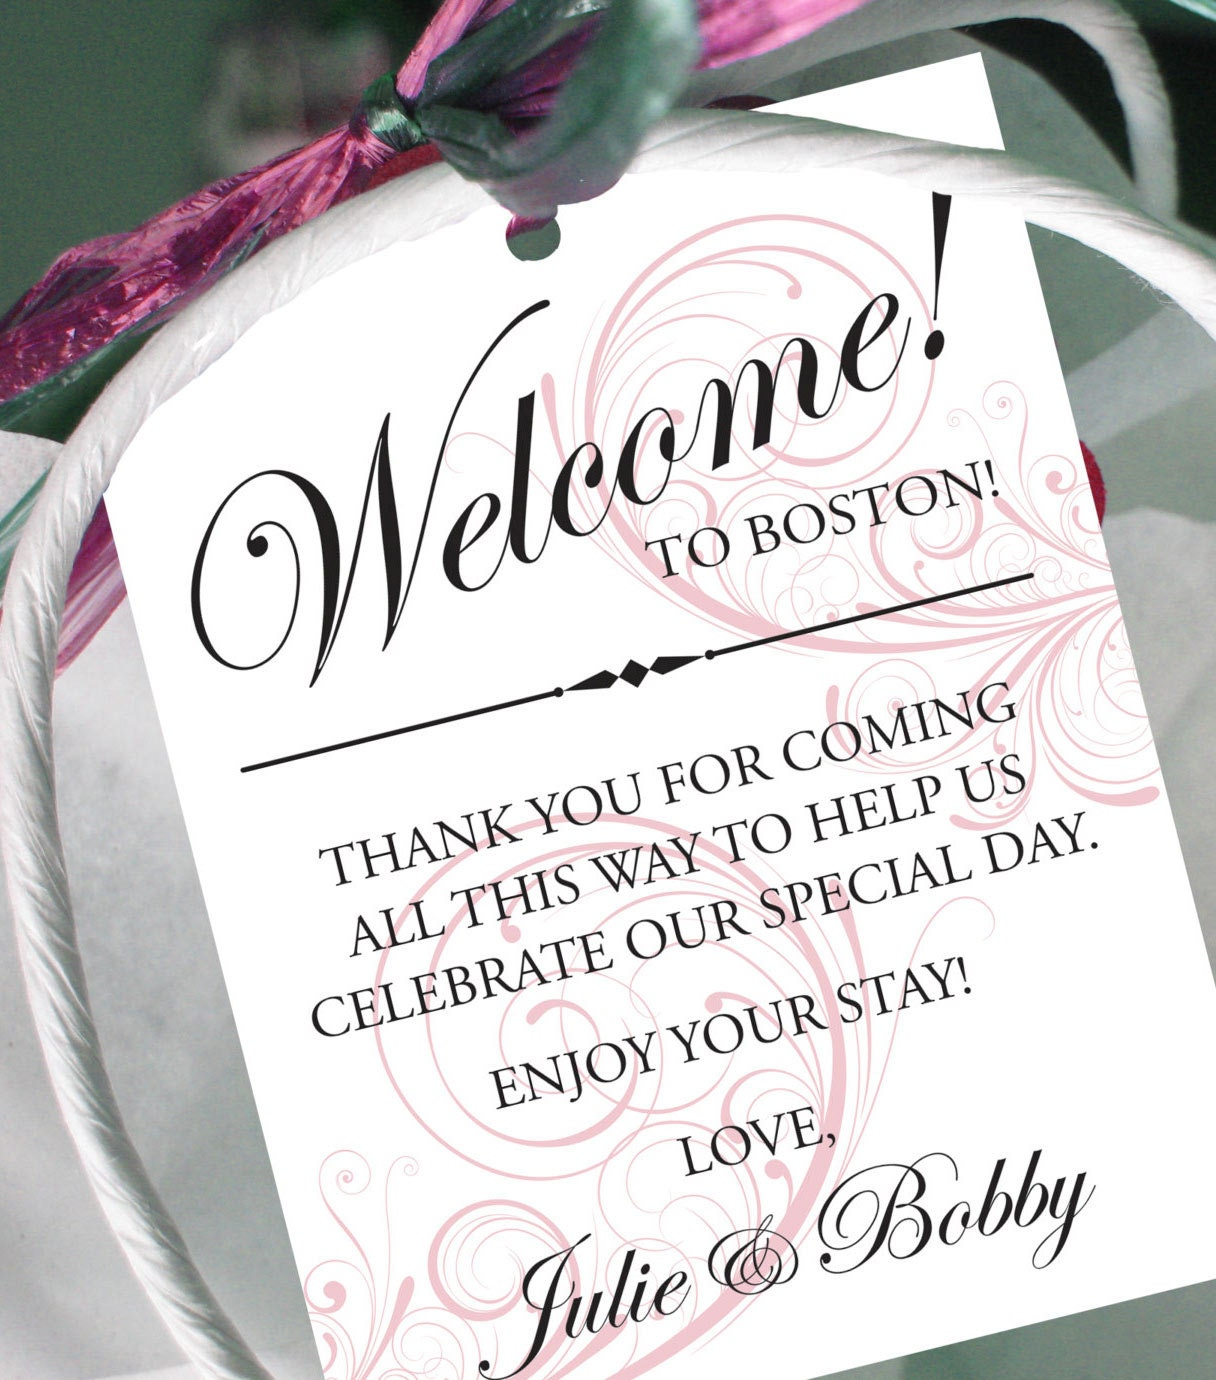 Destination Wedding Gift Ideas: Set Of 10 Swirl Gift Tags For Wedding Hotel Welcome Bag